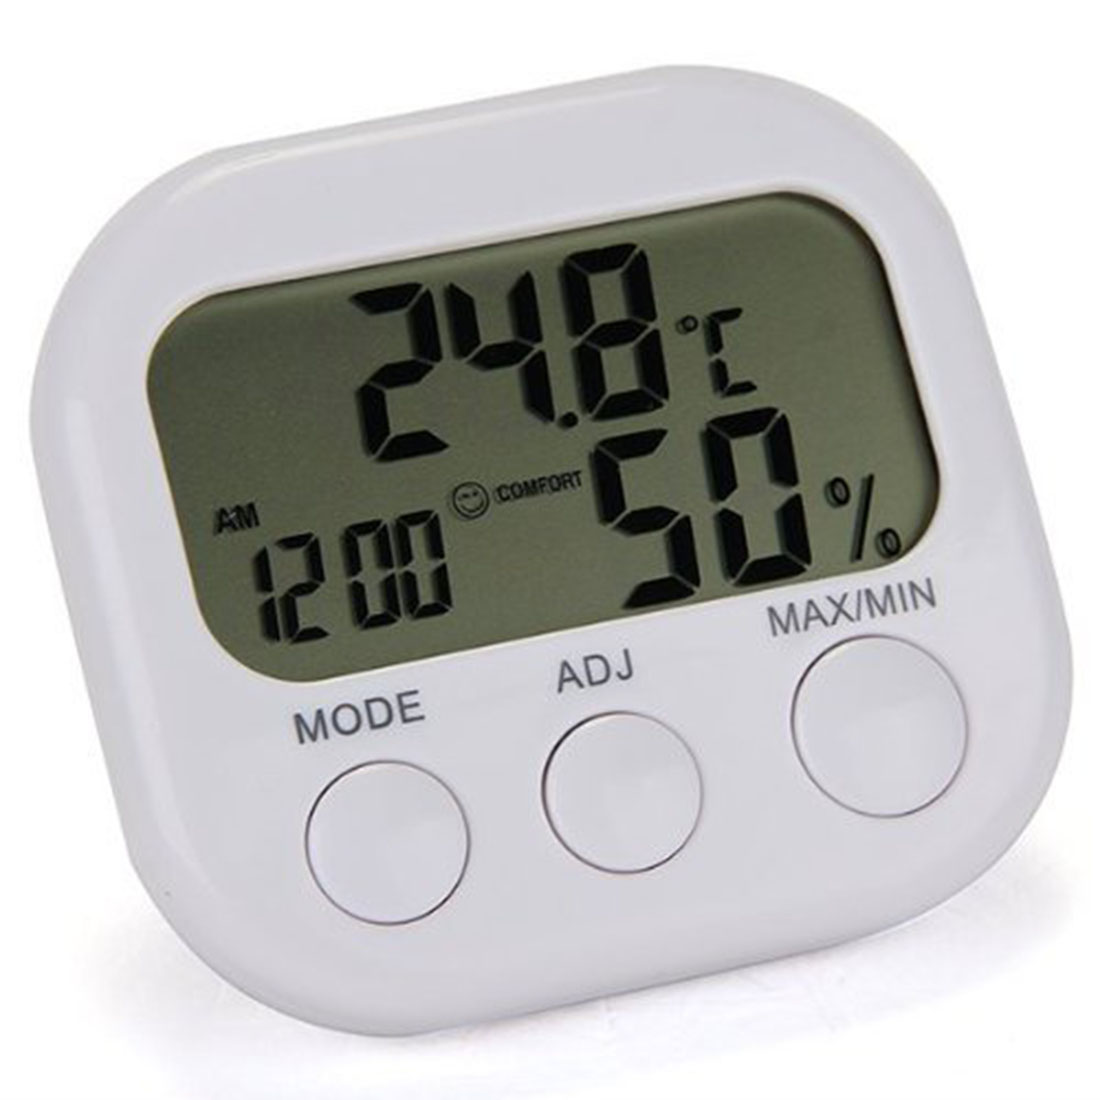 Mini Digital Thermometer Hygrometer Indoor LCD Display Thermo Hygrometers With Stand